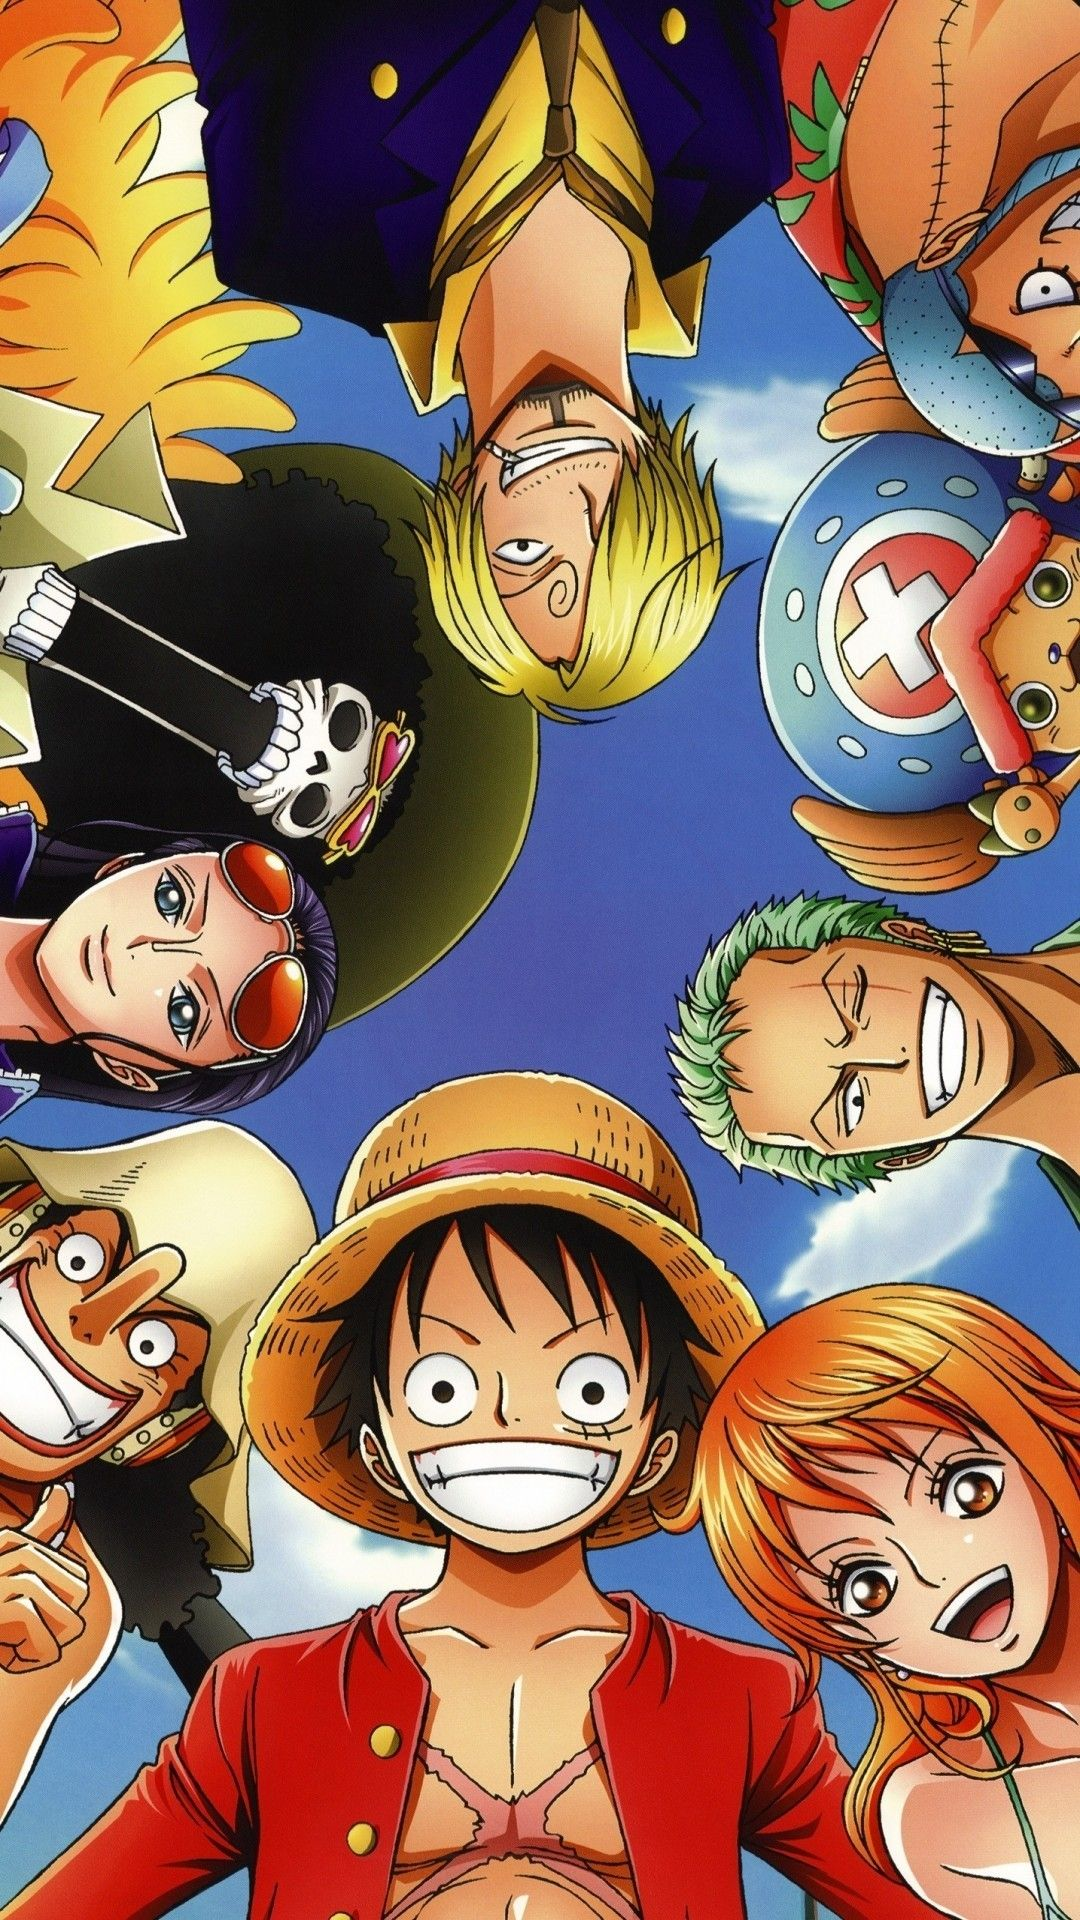 Download image in 2020 Anime, Anime wallpaper, One piece